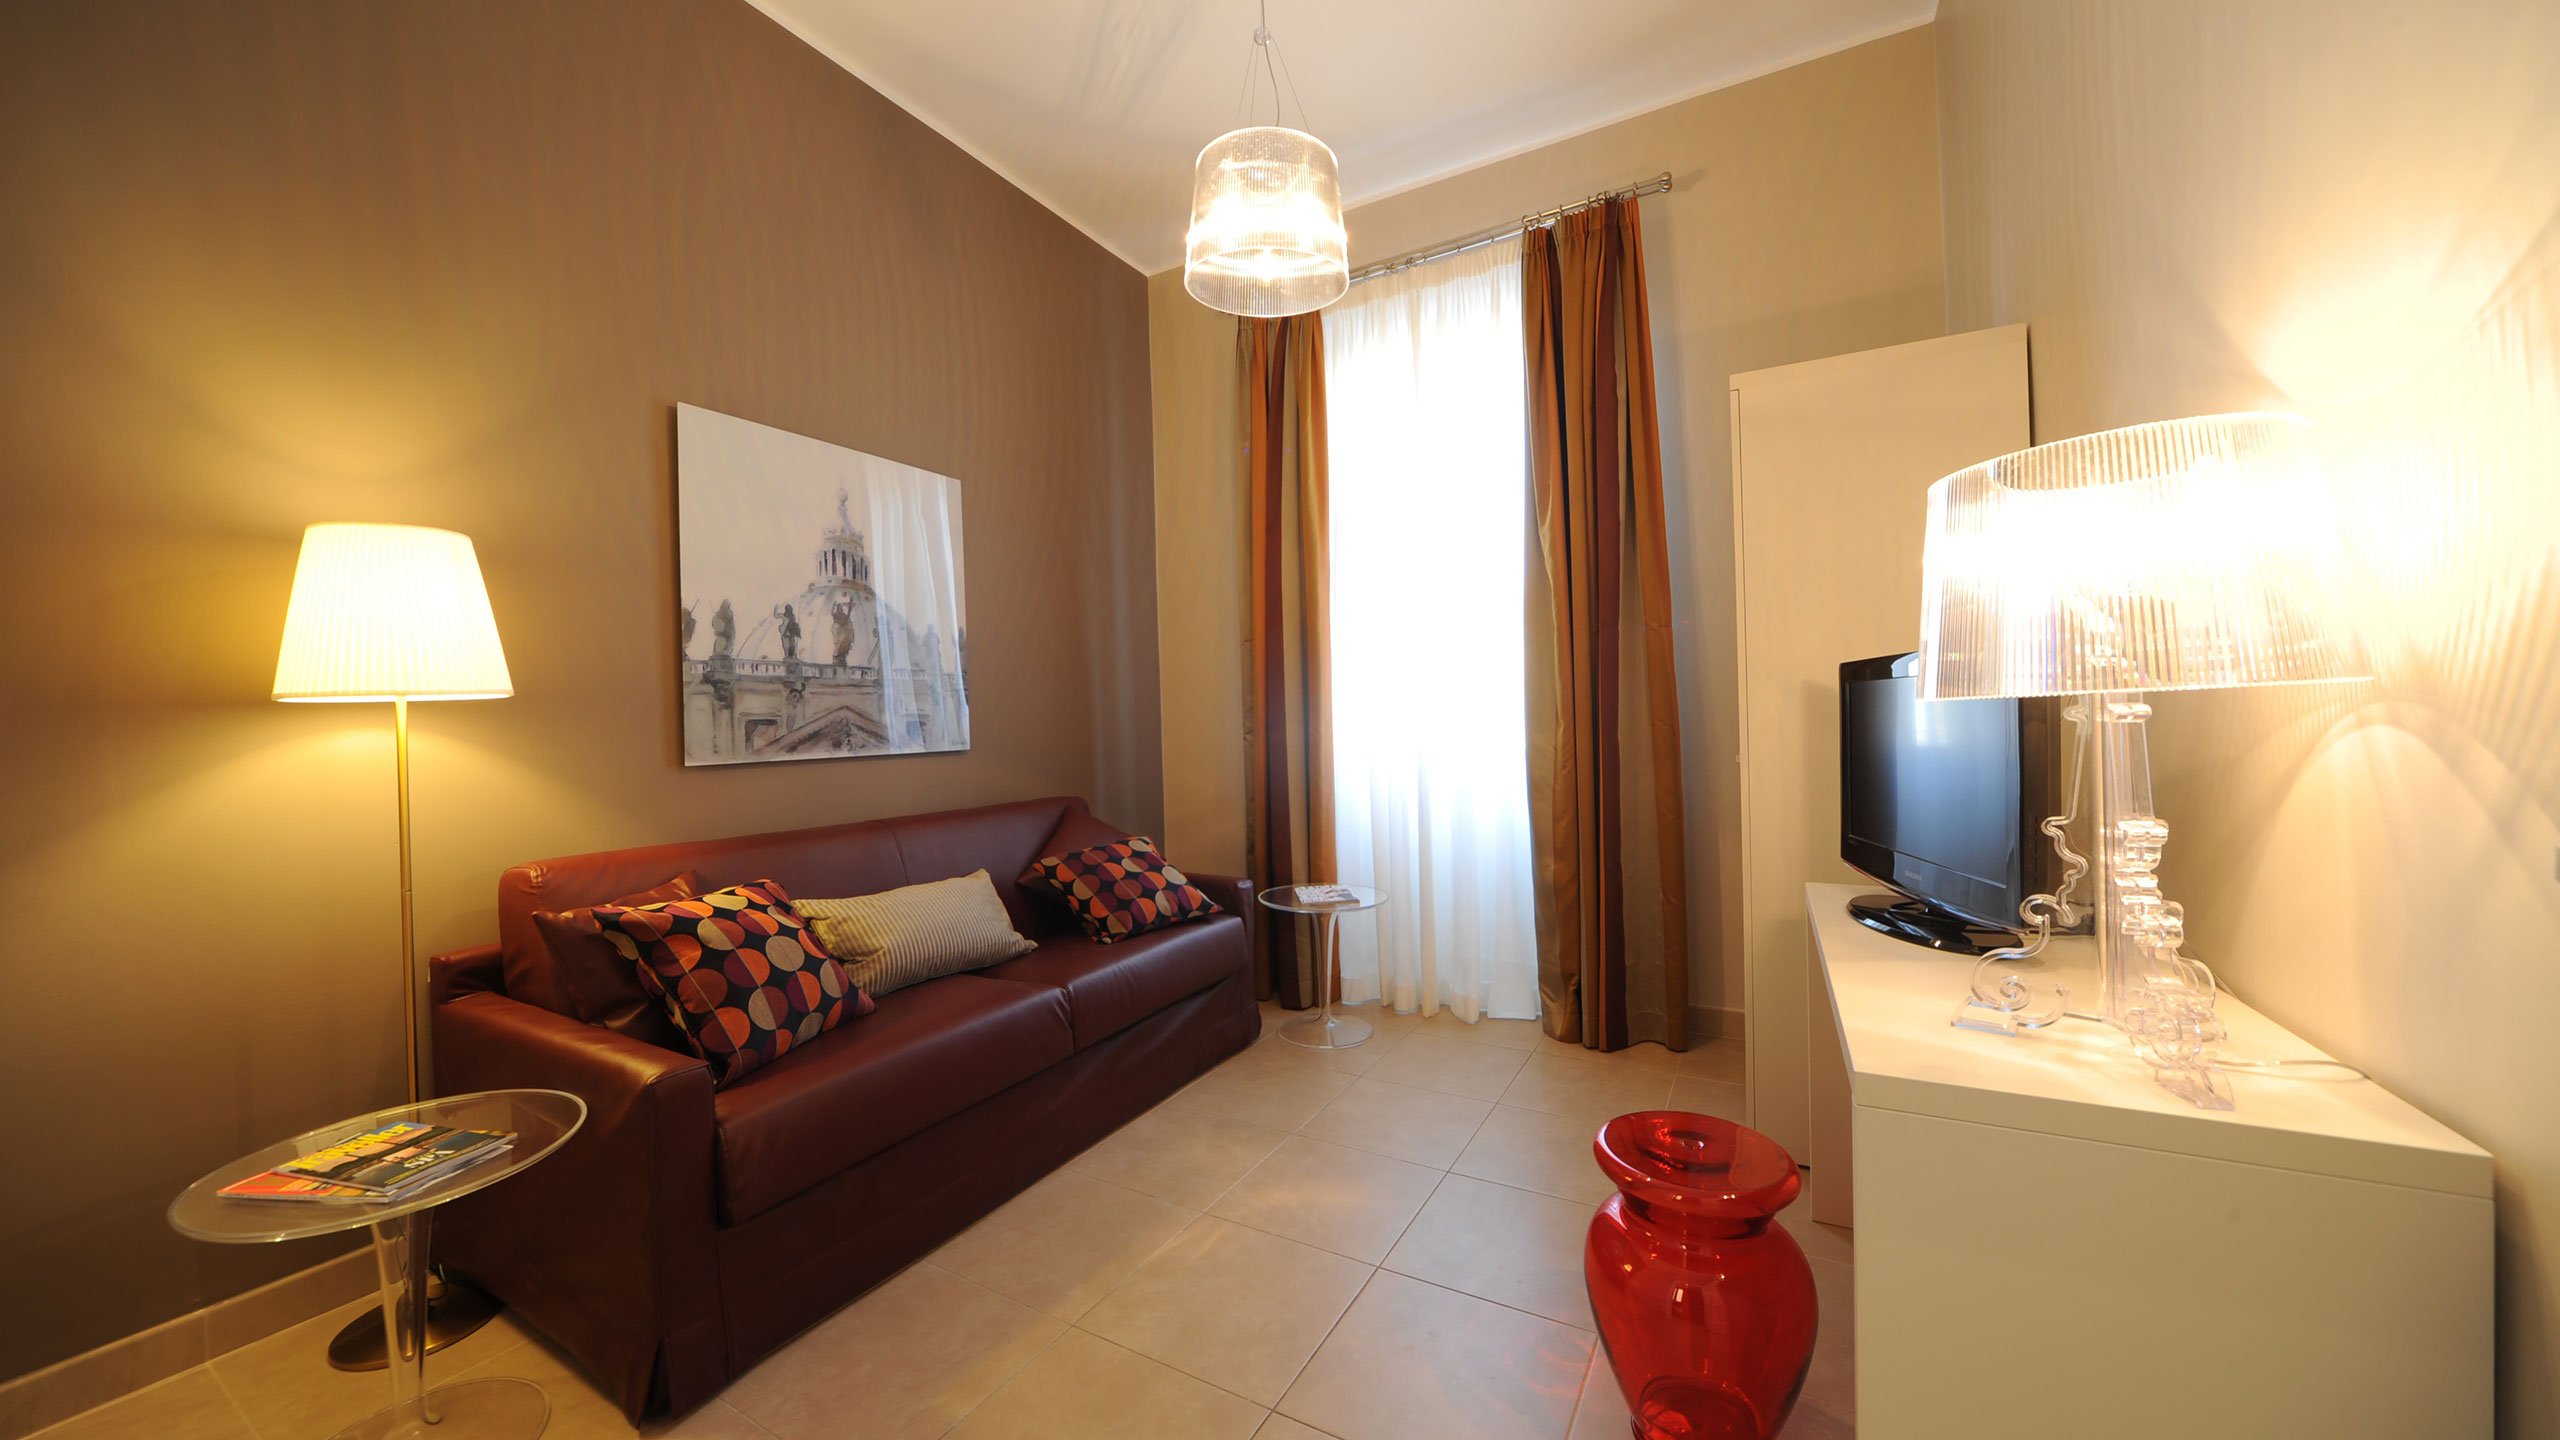 residence-trianon-two-bedroom-apartment-03